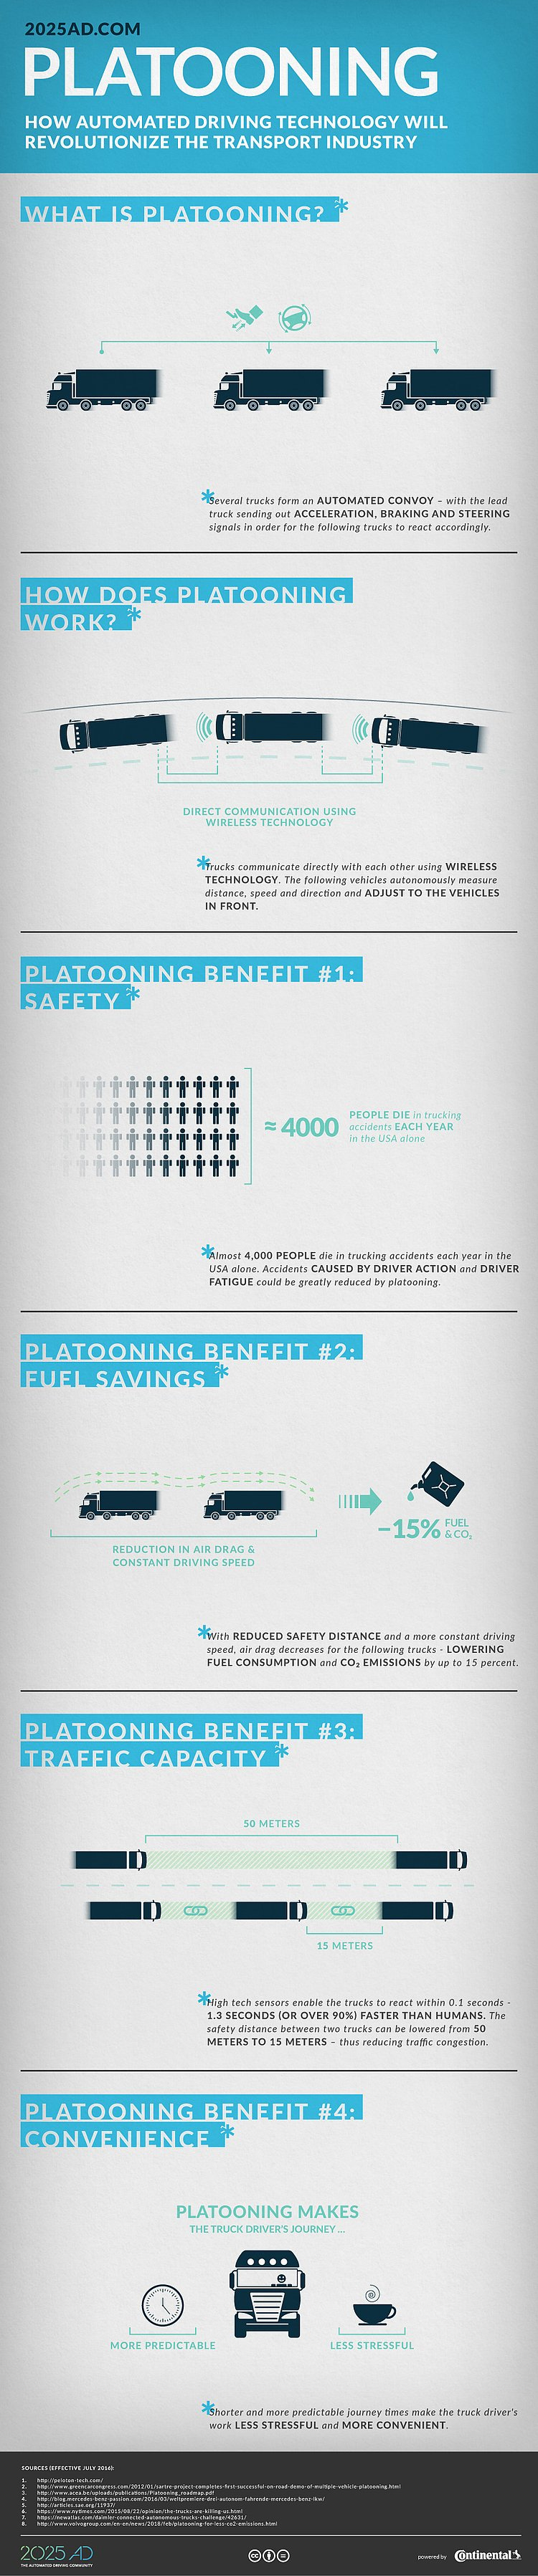 How truck platooning works